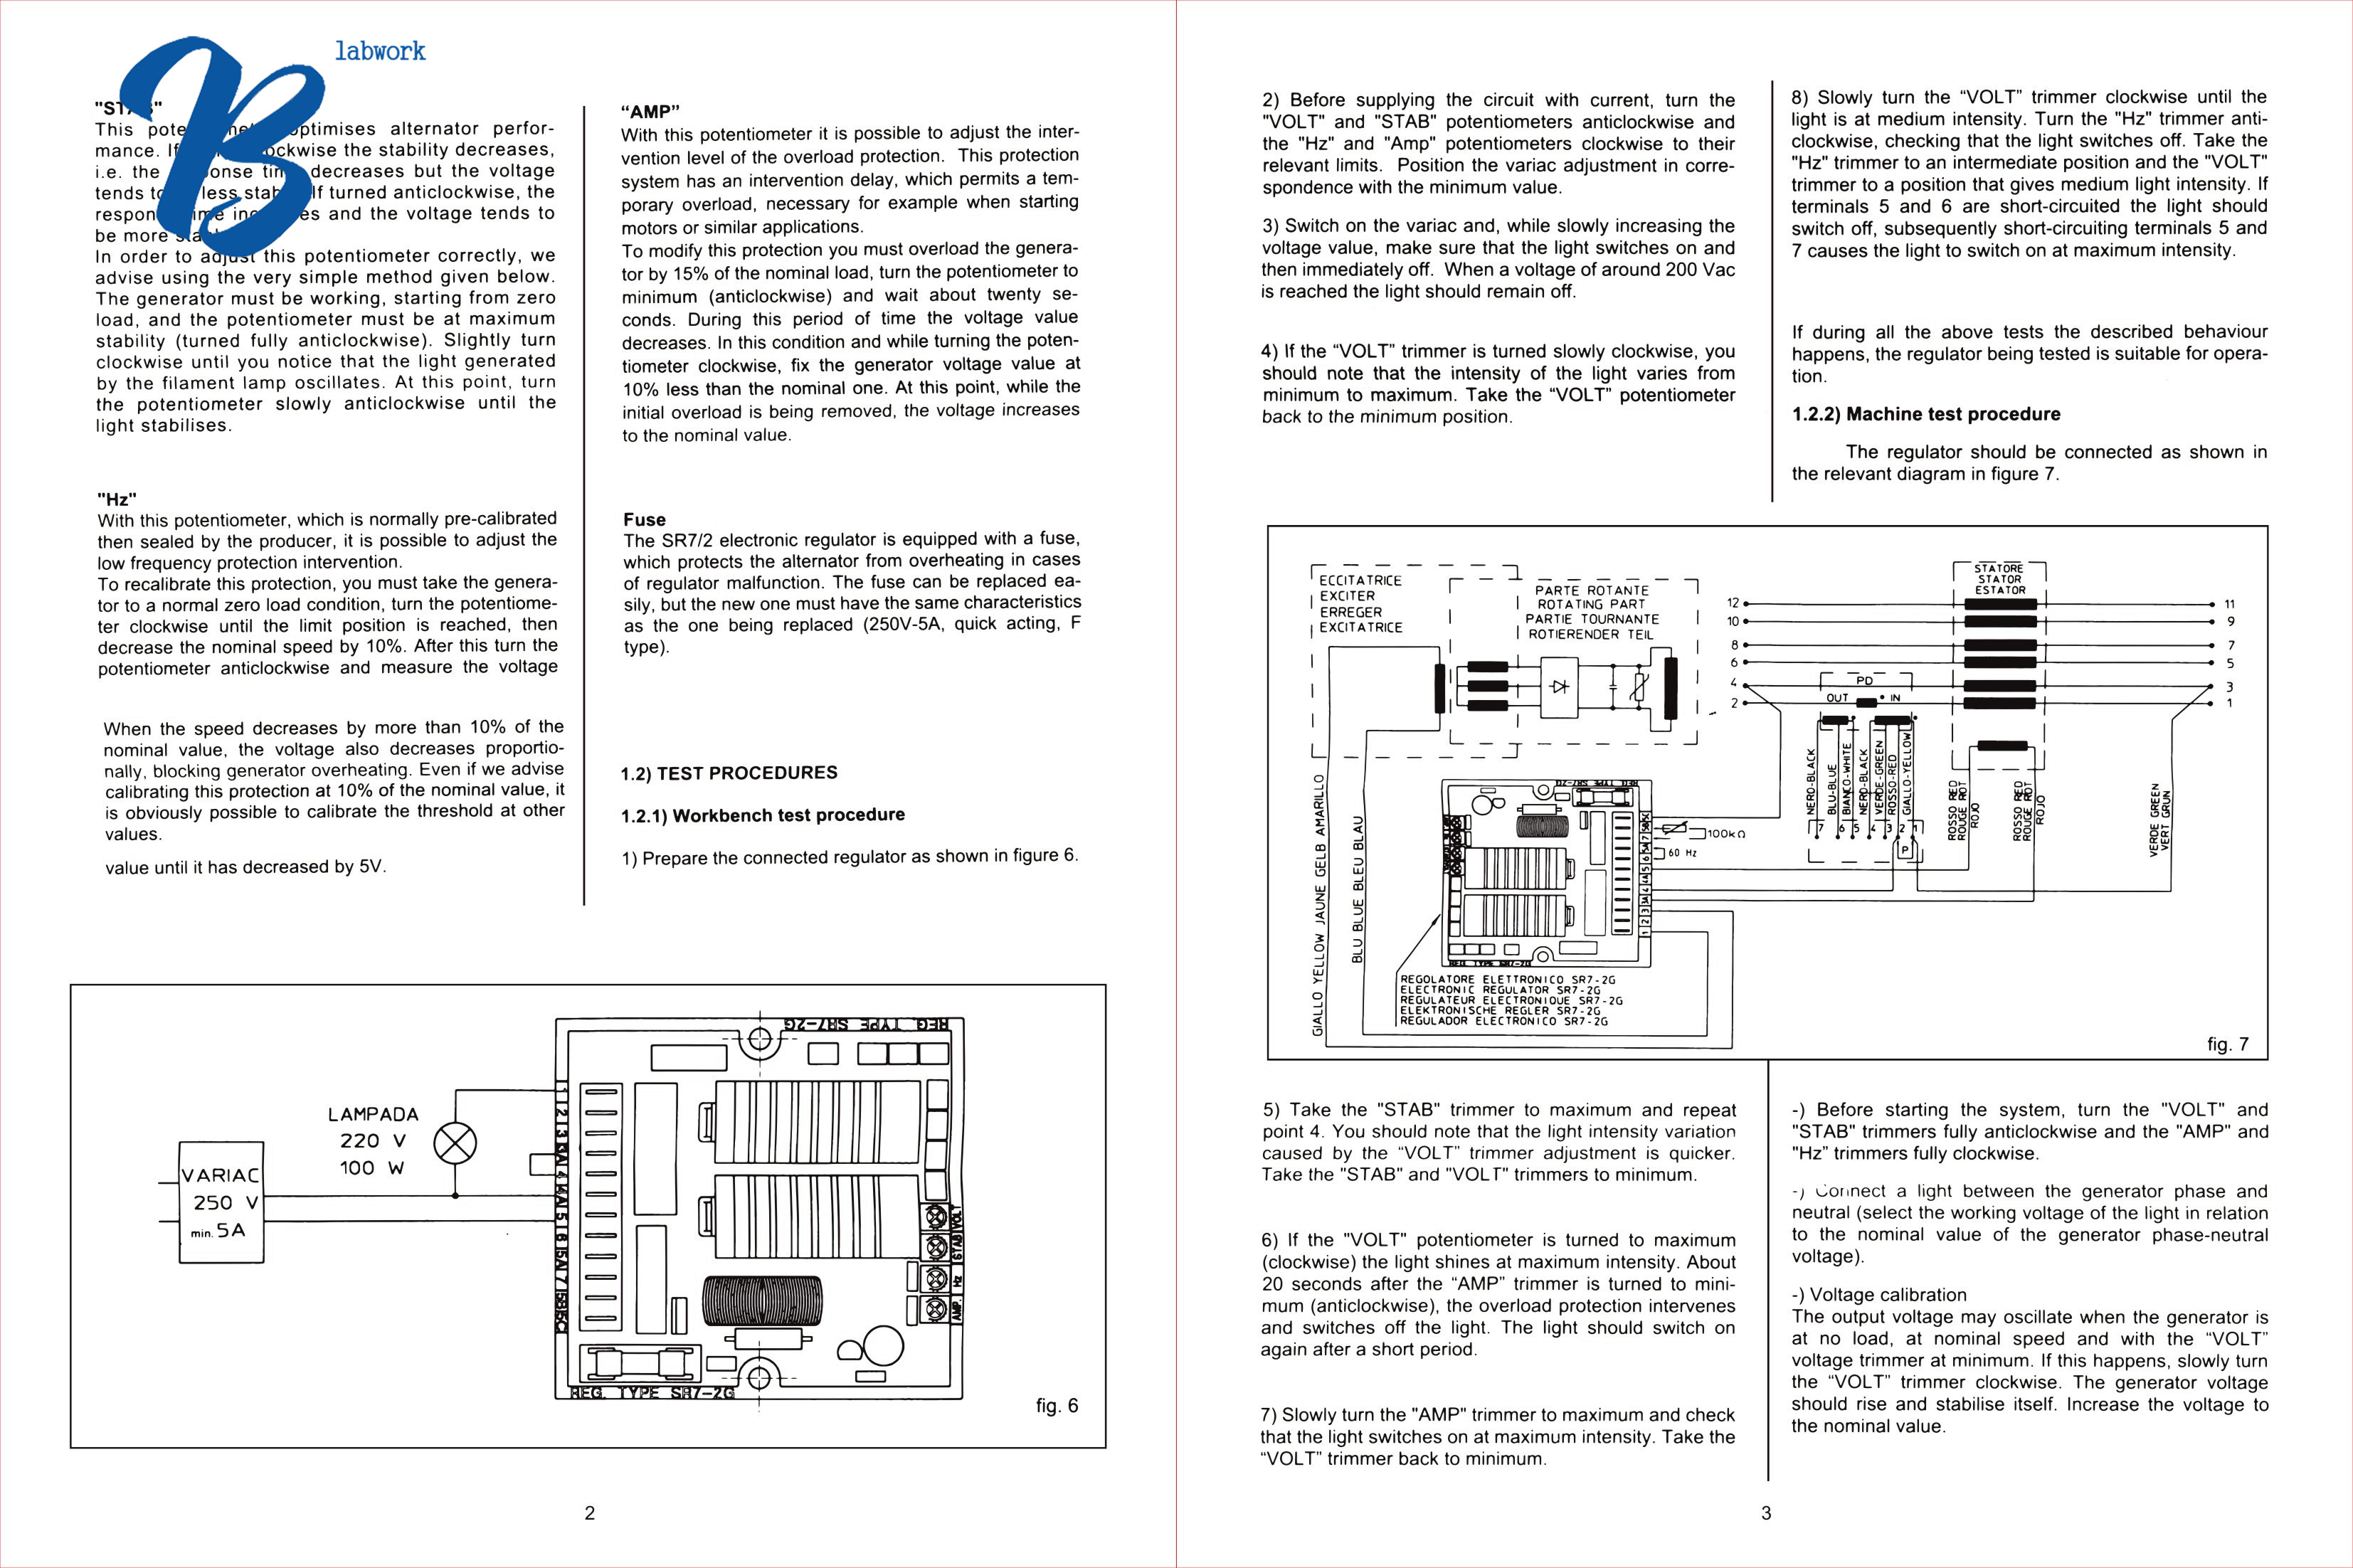 New Avr Sr7 Automatic Voltage Regulator Replacement For Meccalte Mecc Alte Wiring Diagram From Ca